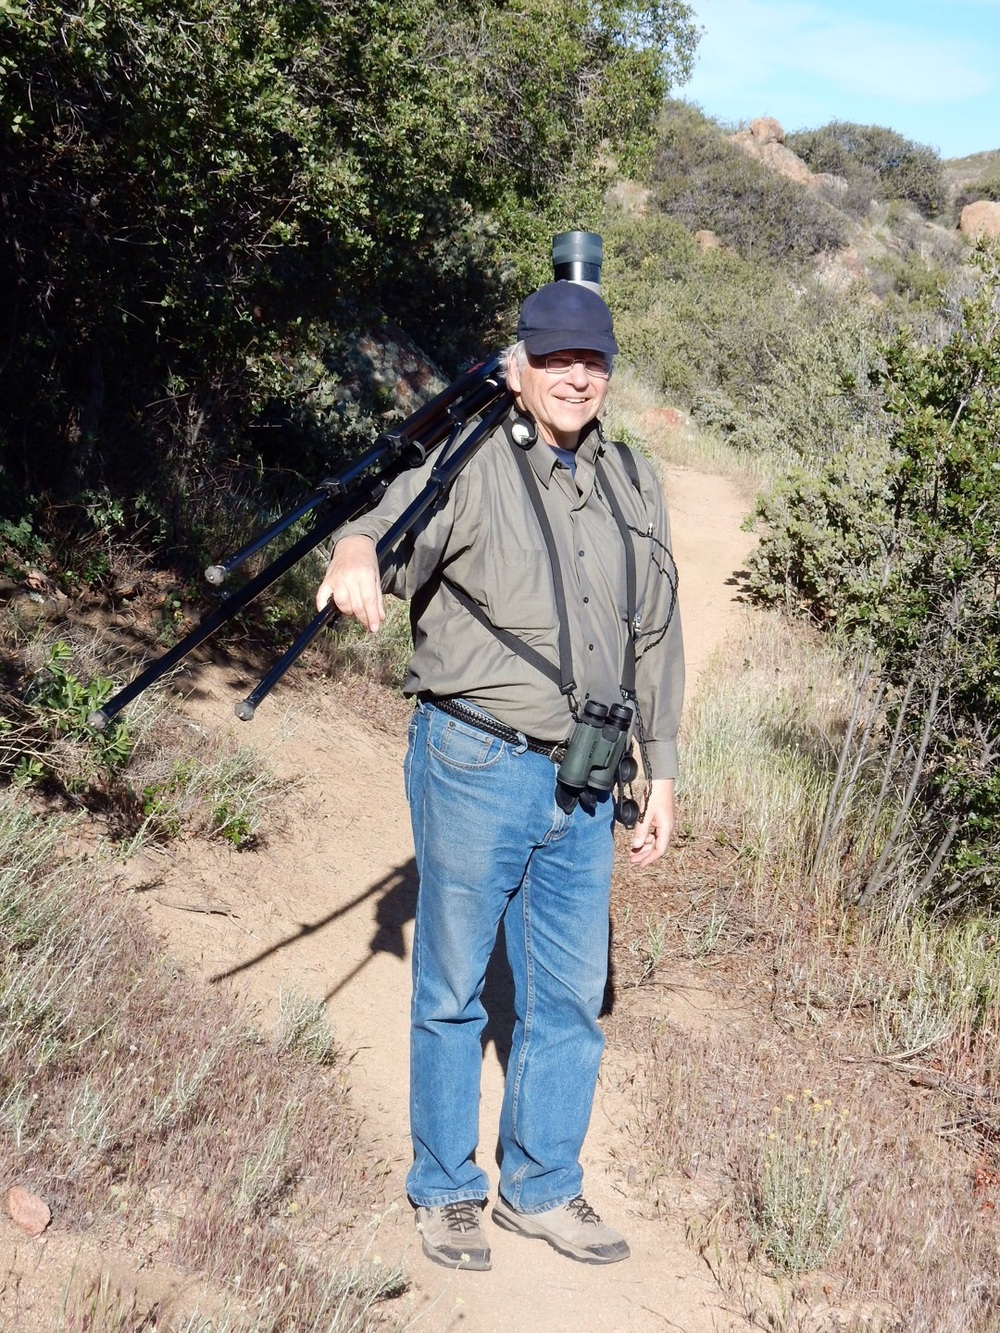 Searching for mountain quail and gray vireo. Happy hunting, Mark!